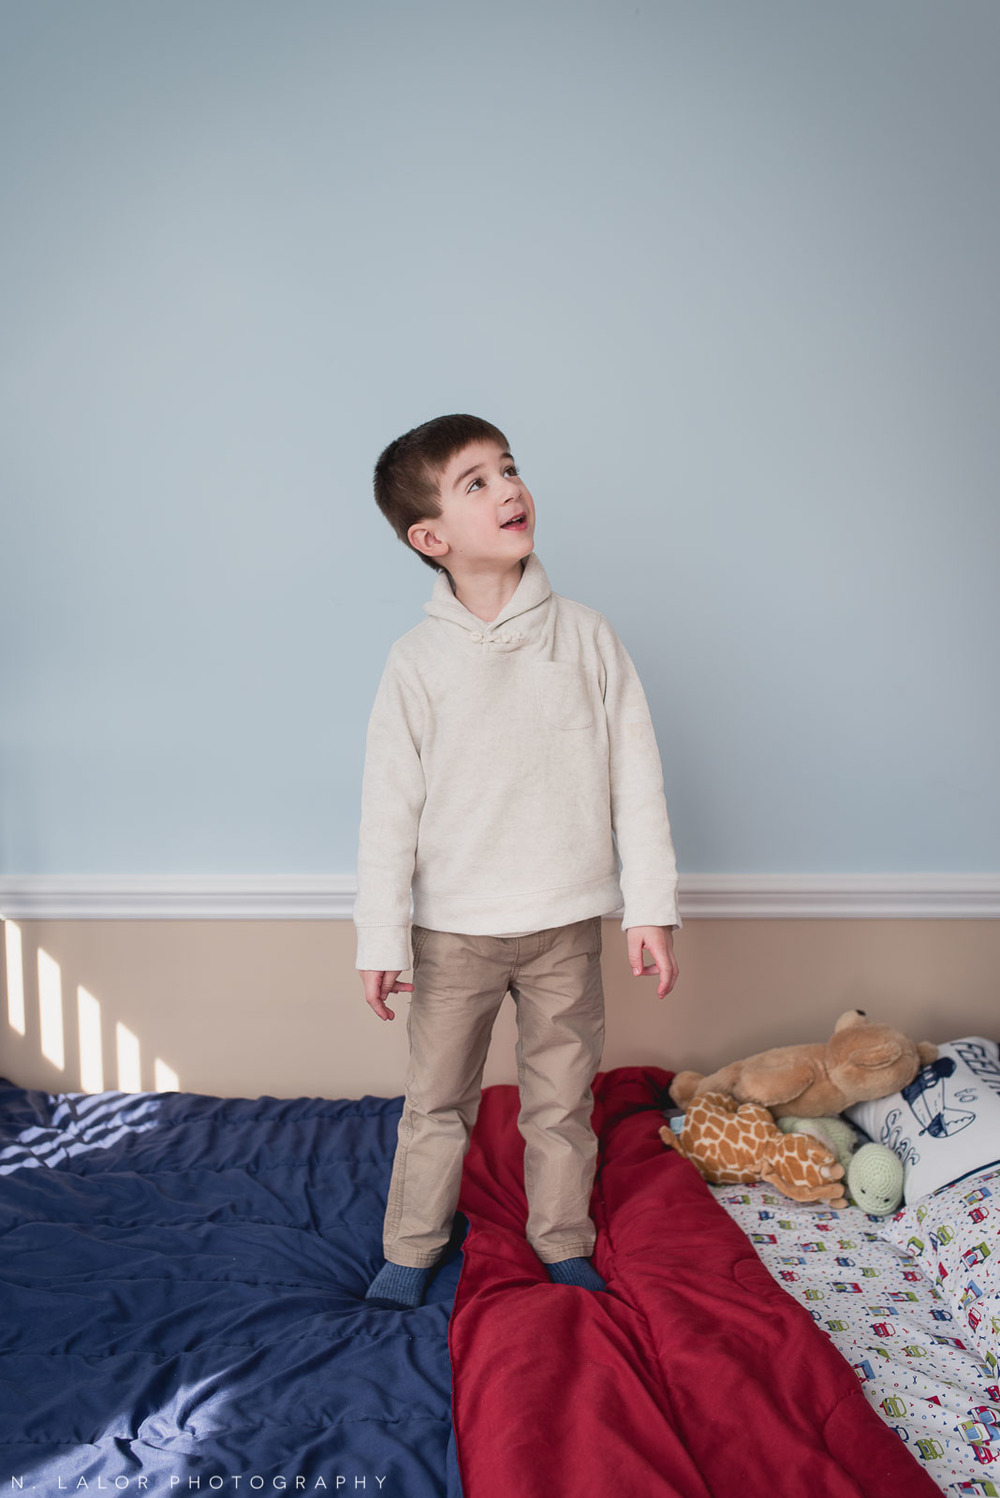 4-year old boy standing on his beds in his room. Lifestyle photo by N. Lalor Photography.